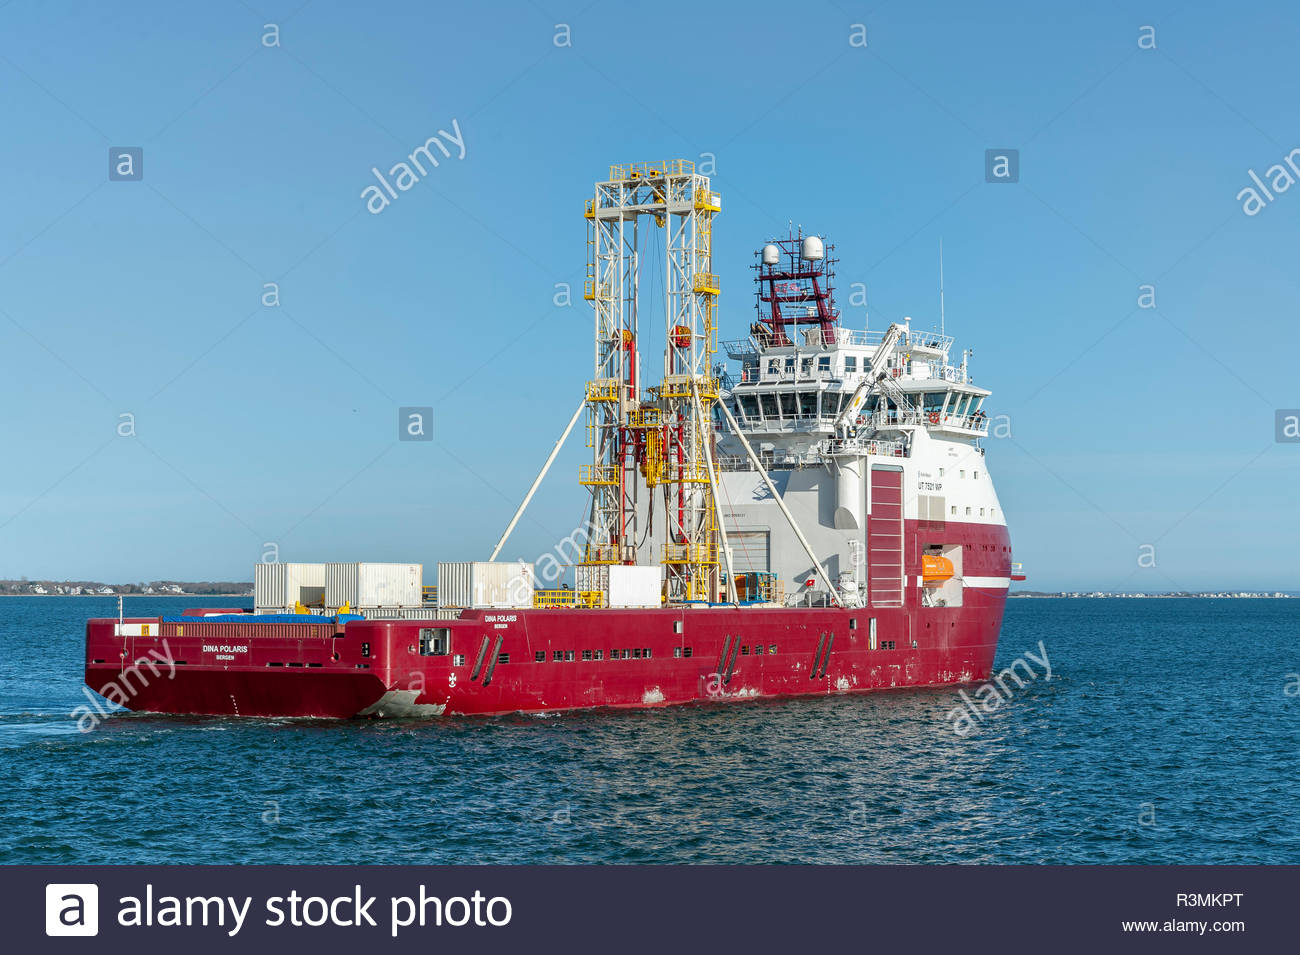 New Bedford, Massachusetts, USA - April 26, 2018: Geotechnical drilling vessel Dina Polaris heading for Buzzards Bay from New Bedford - Stock Image